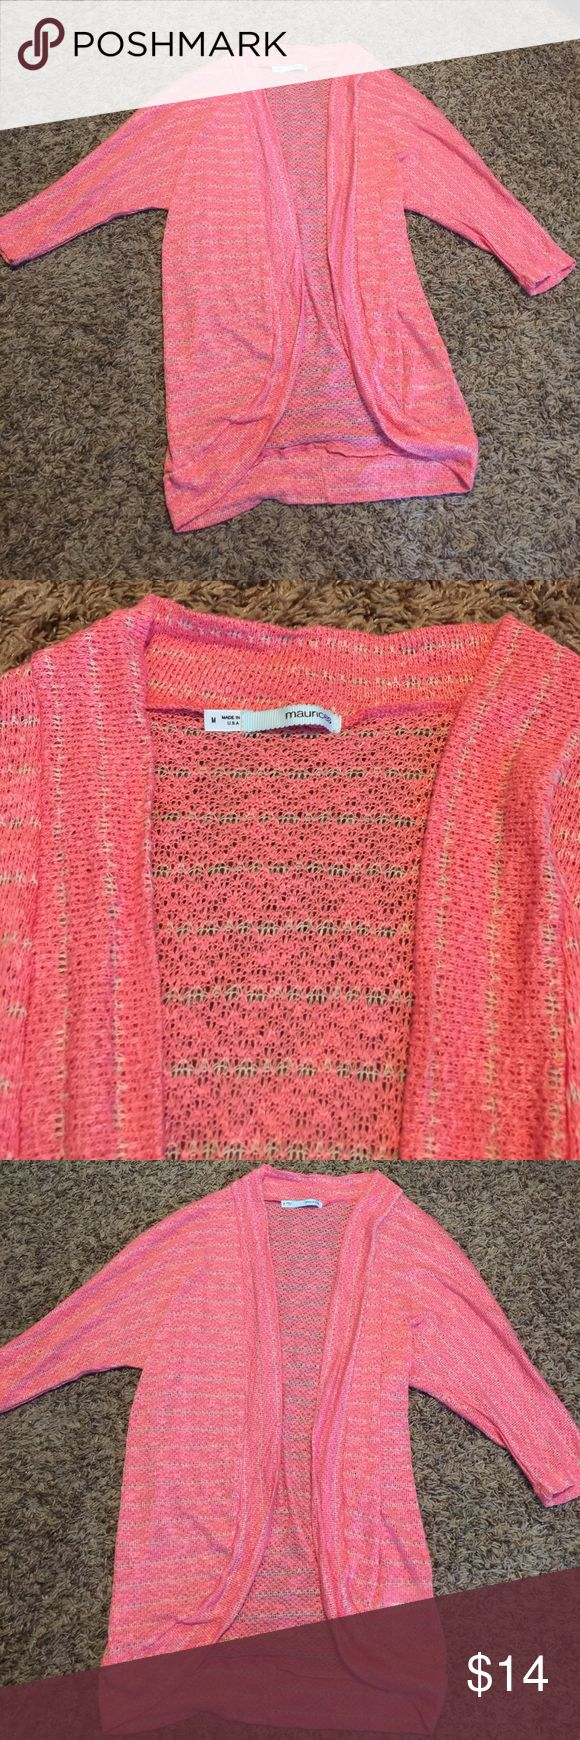 Very light coral cardigan This sweater is very cute. It is nice and light. It is coral with tan stripes. This looks brand new. Maurices Sweaters Cardigans